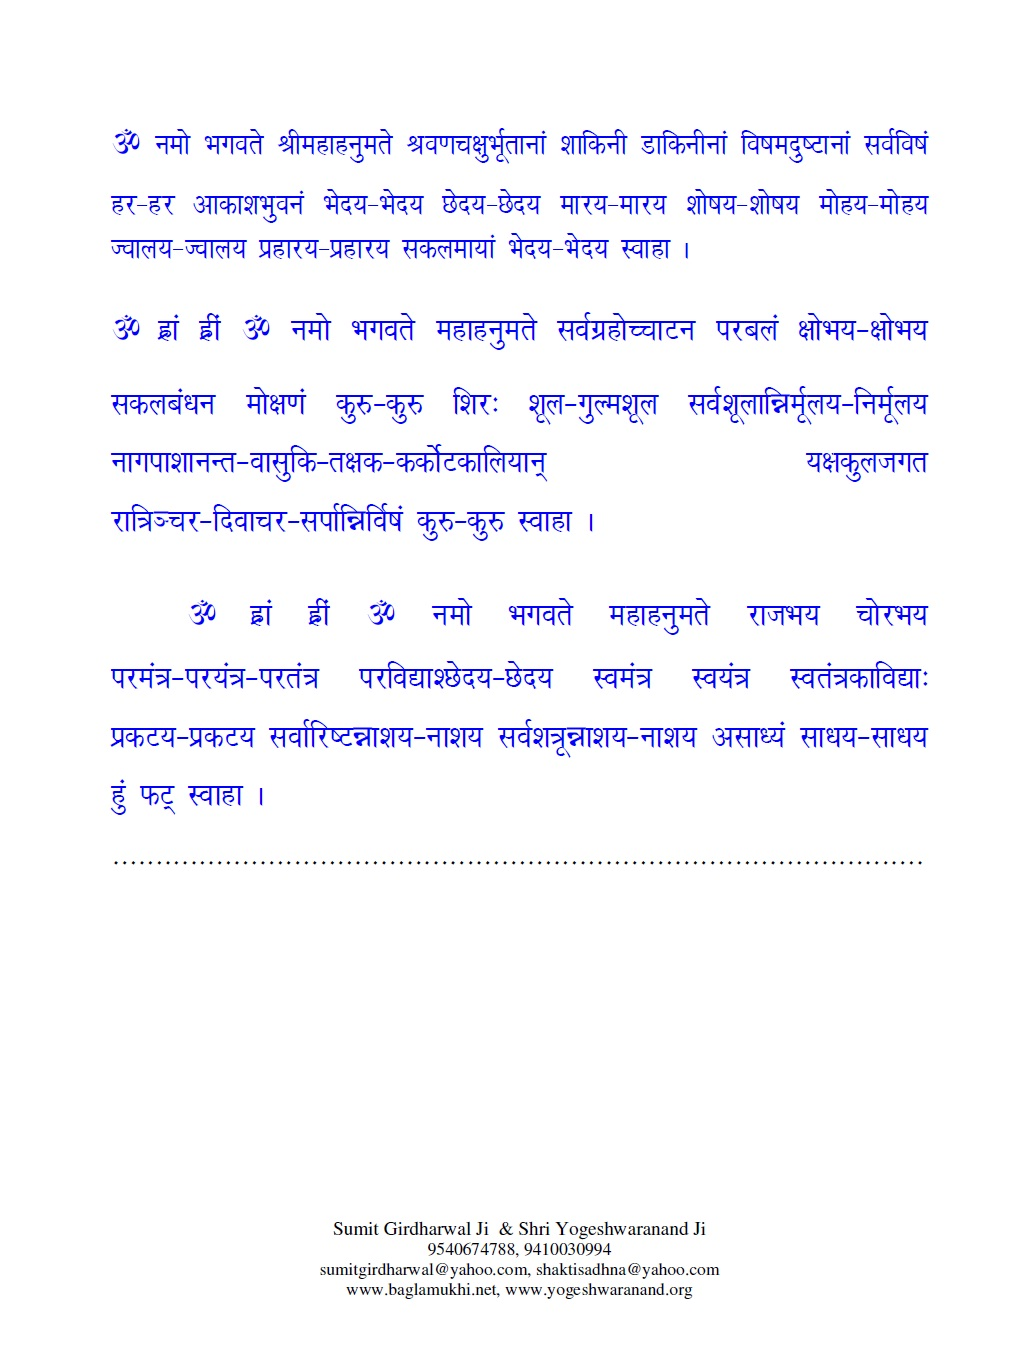 vishnu sahasranamam in hindi with meaning pdf